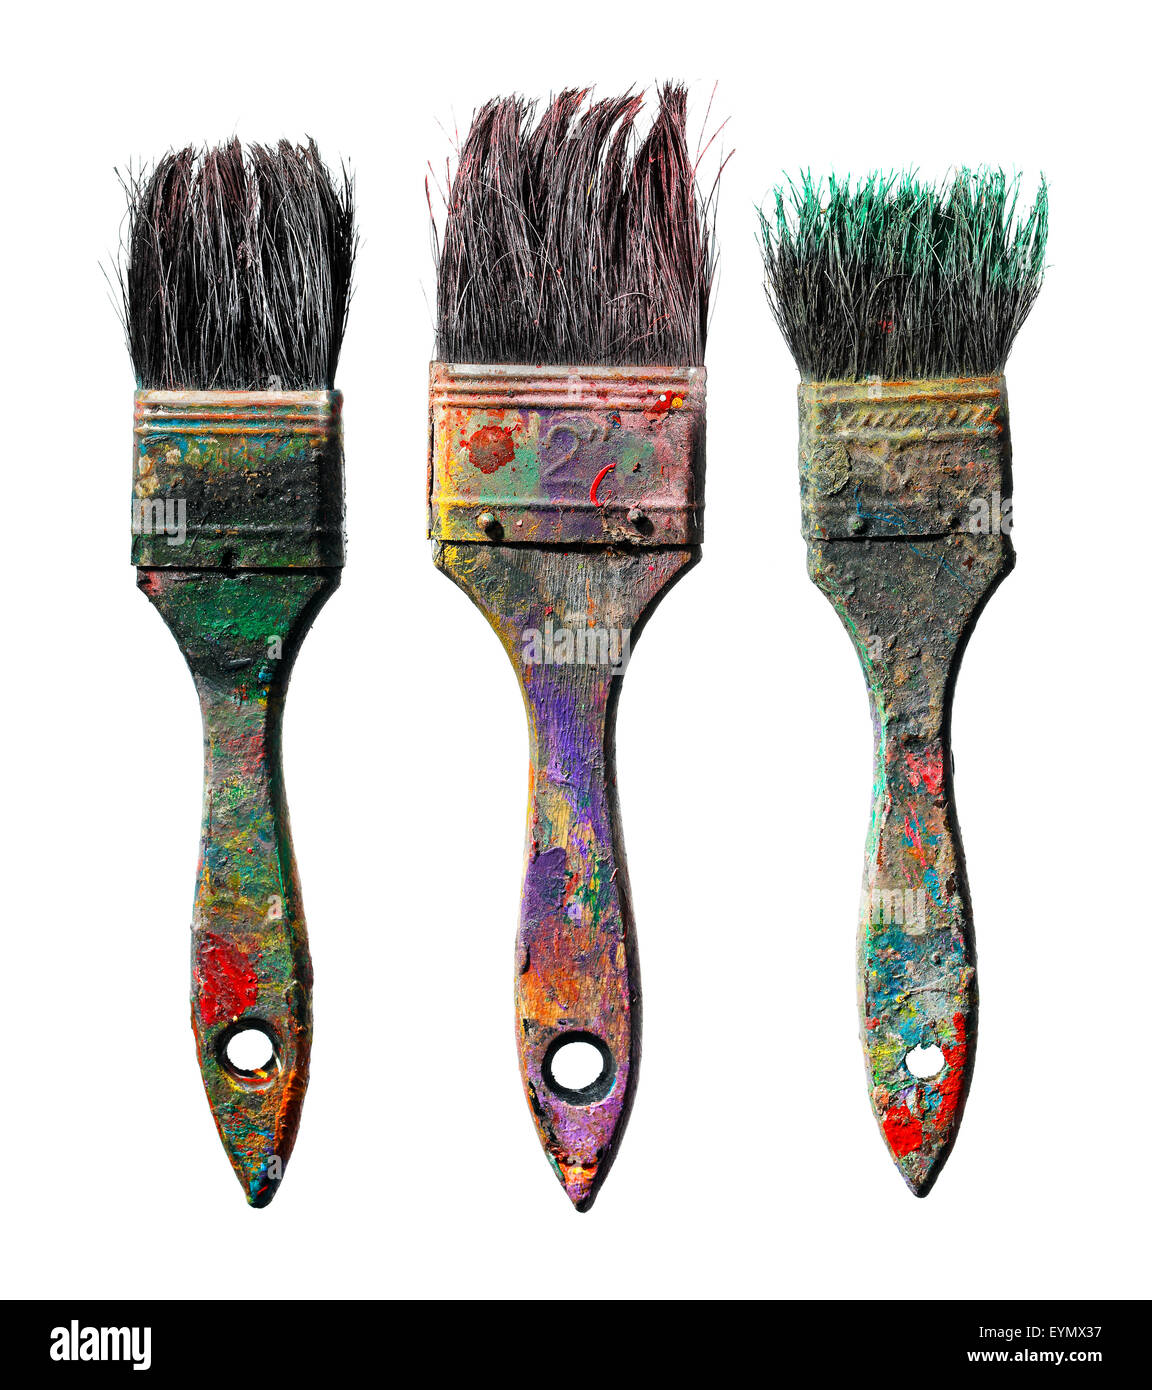 Old dirty paint brushes isolated on white. - Stock Image